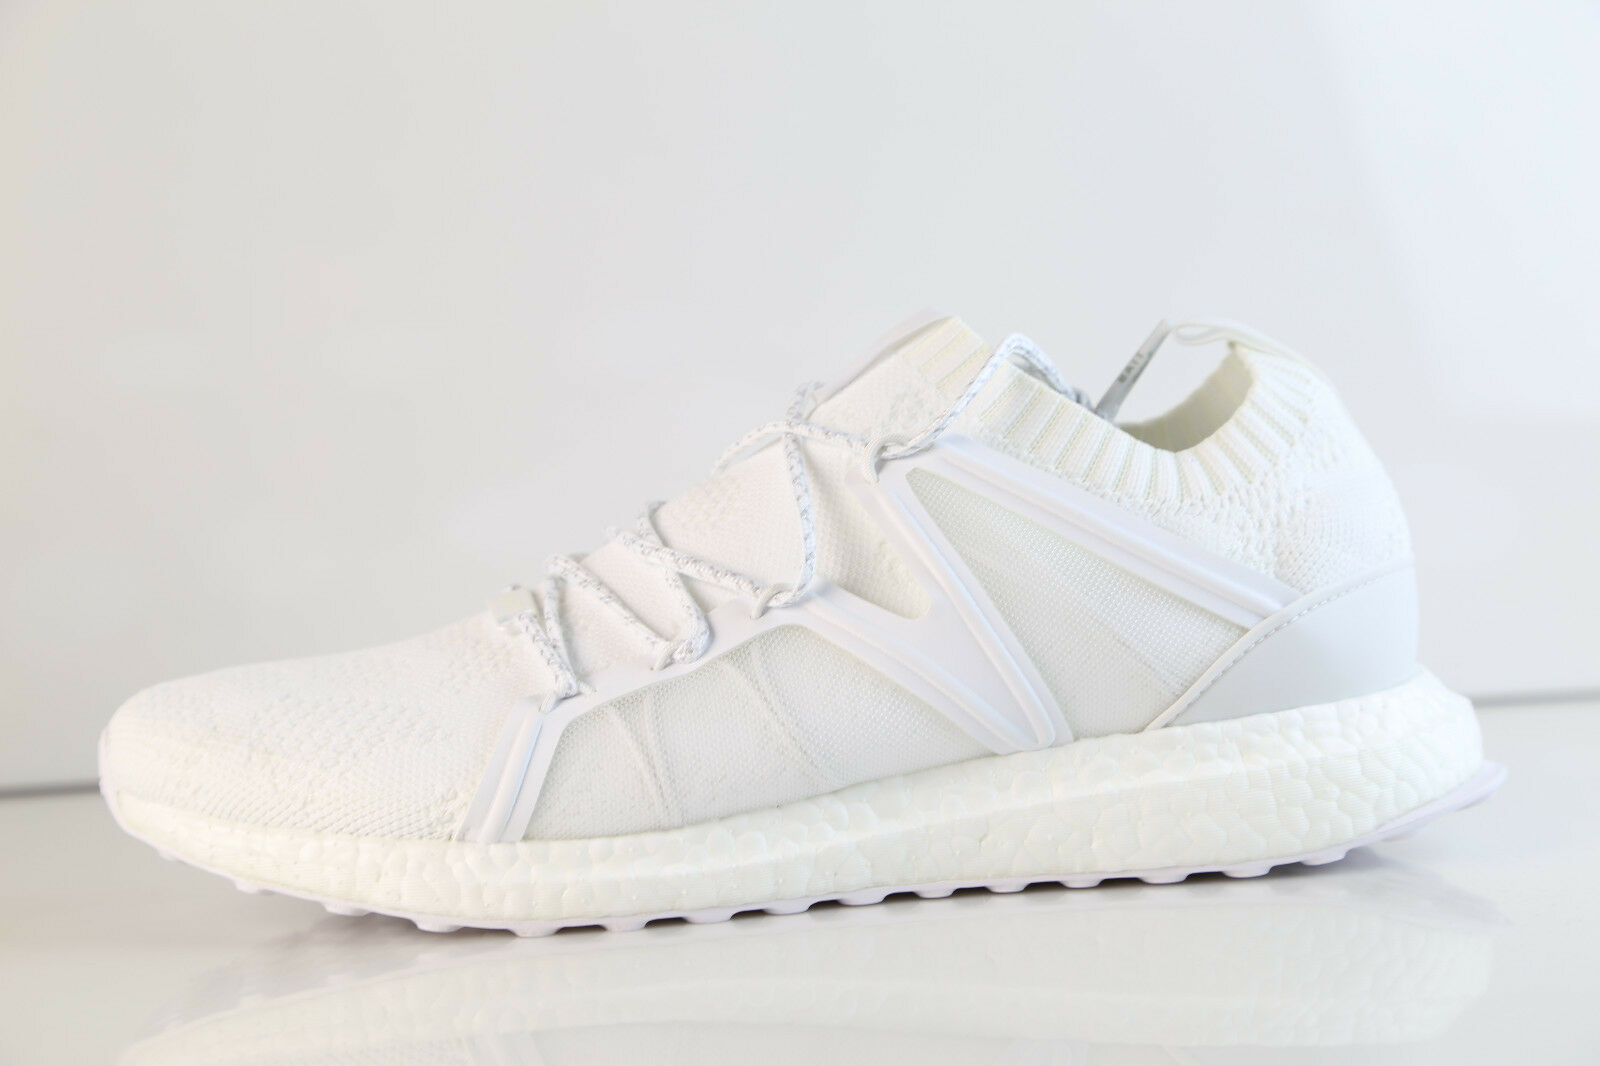 sports shoes b3527 b5c4c Adidas Bait Equipment Support 93 16 Research Weiß Glow CM7874 7-12.5  Research boost 3f2d94